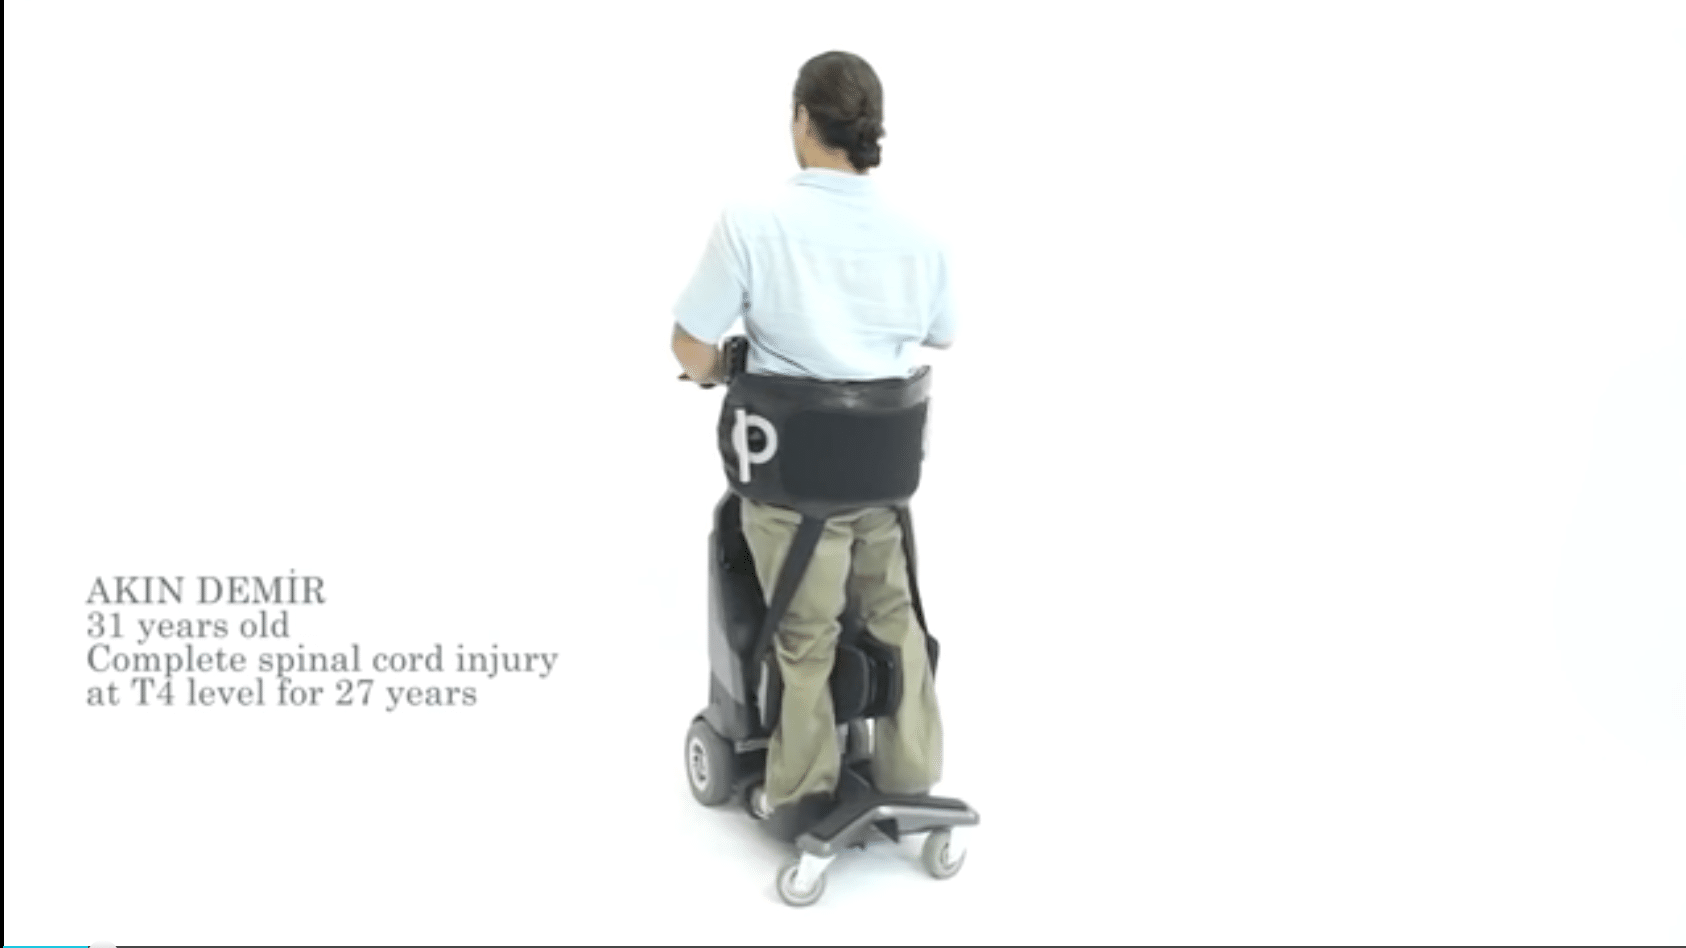 New Robotics Technology Brings Standing and Mobility to Wheelchair Users